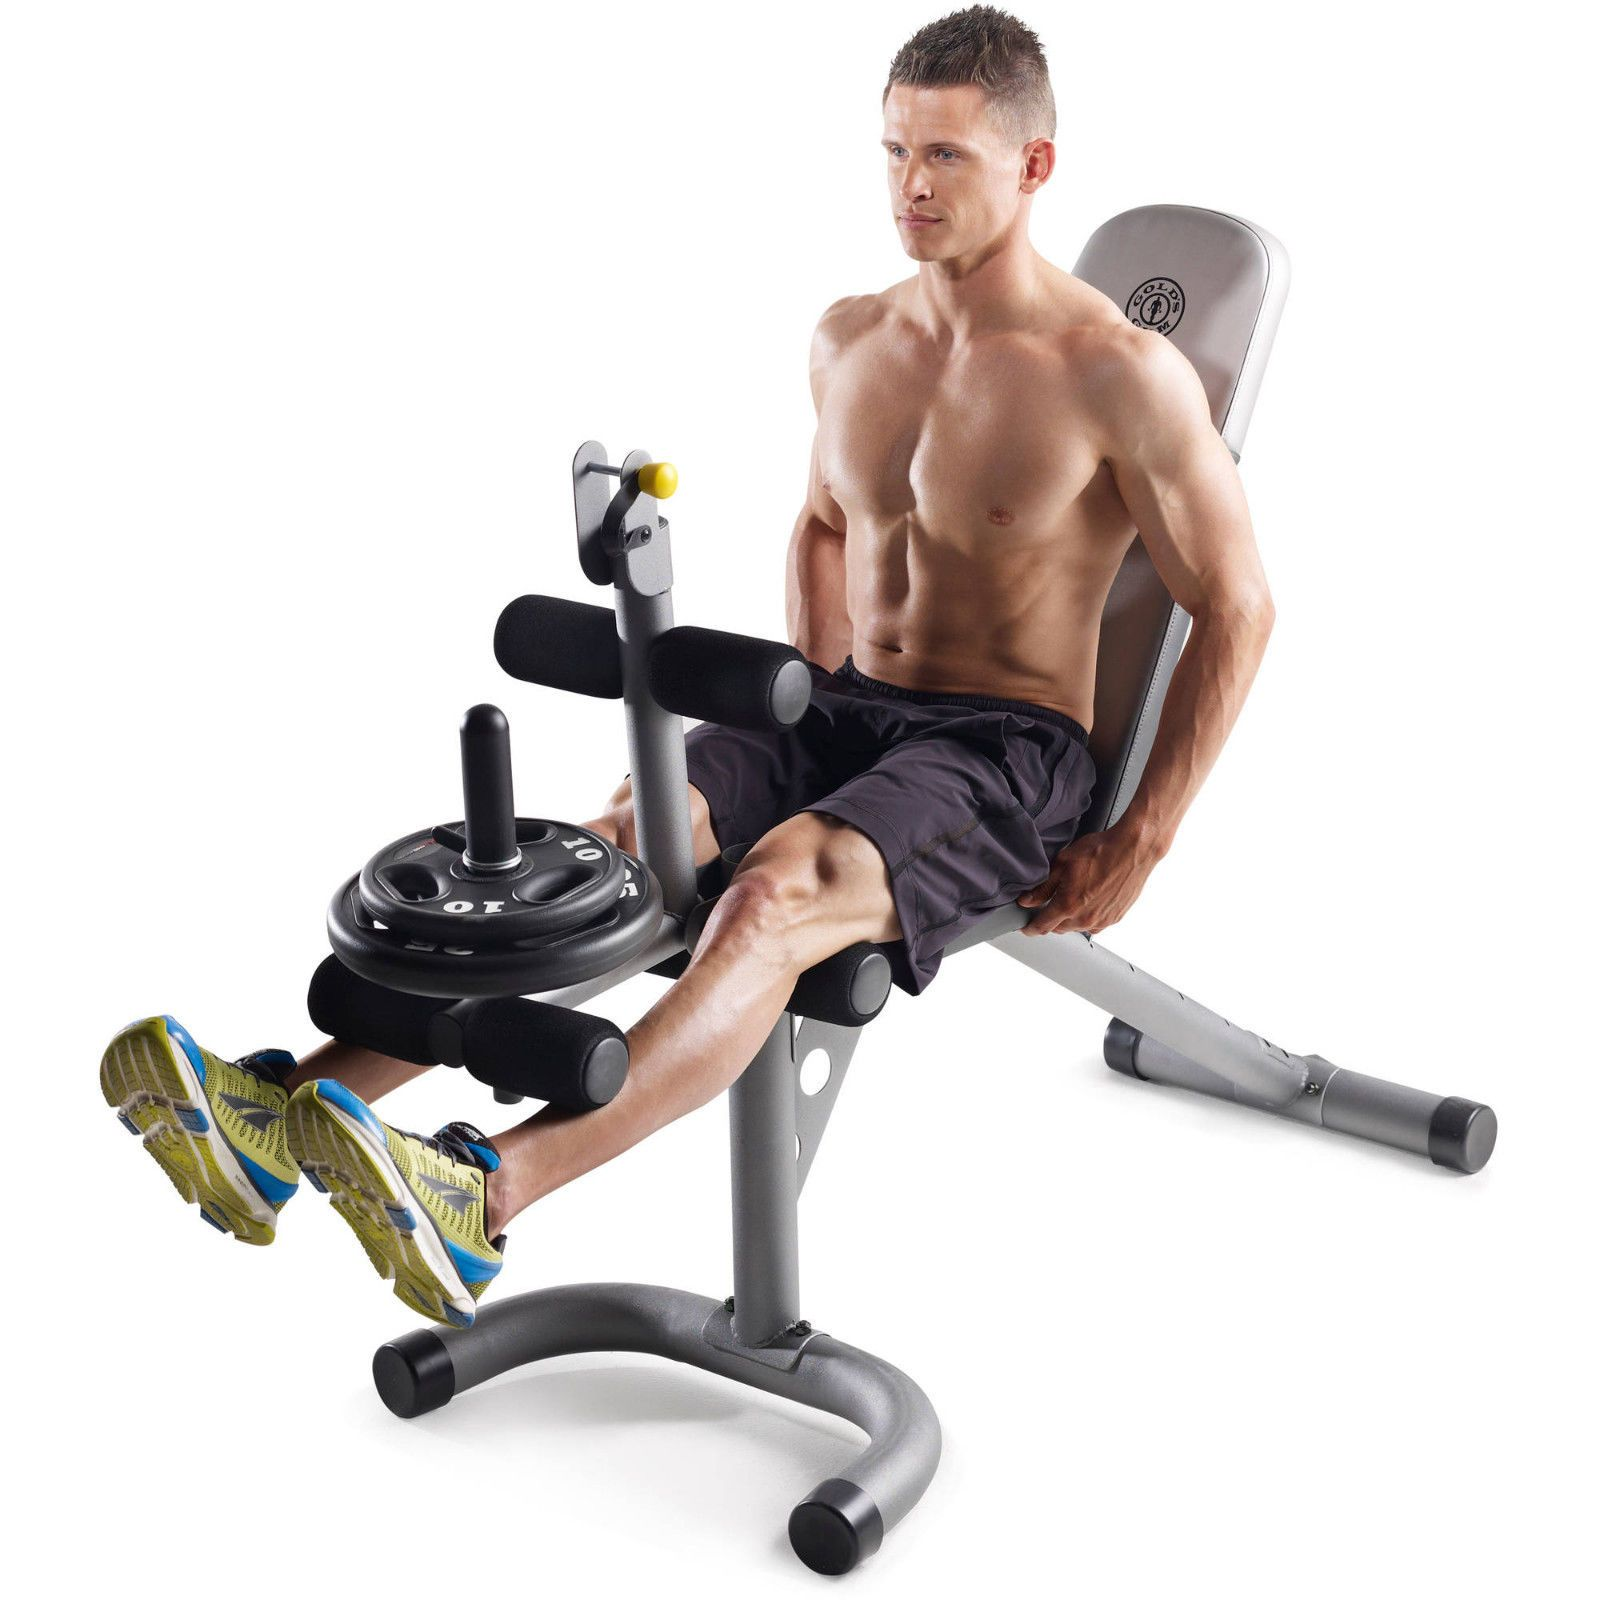 Gym Equipment Legs: Fitness Equipment For Abs Workout Exercise Adjustable